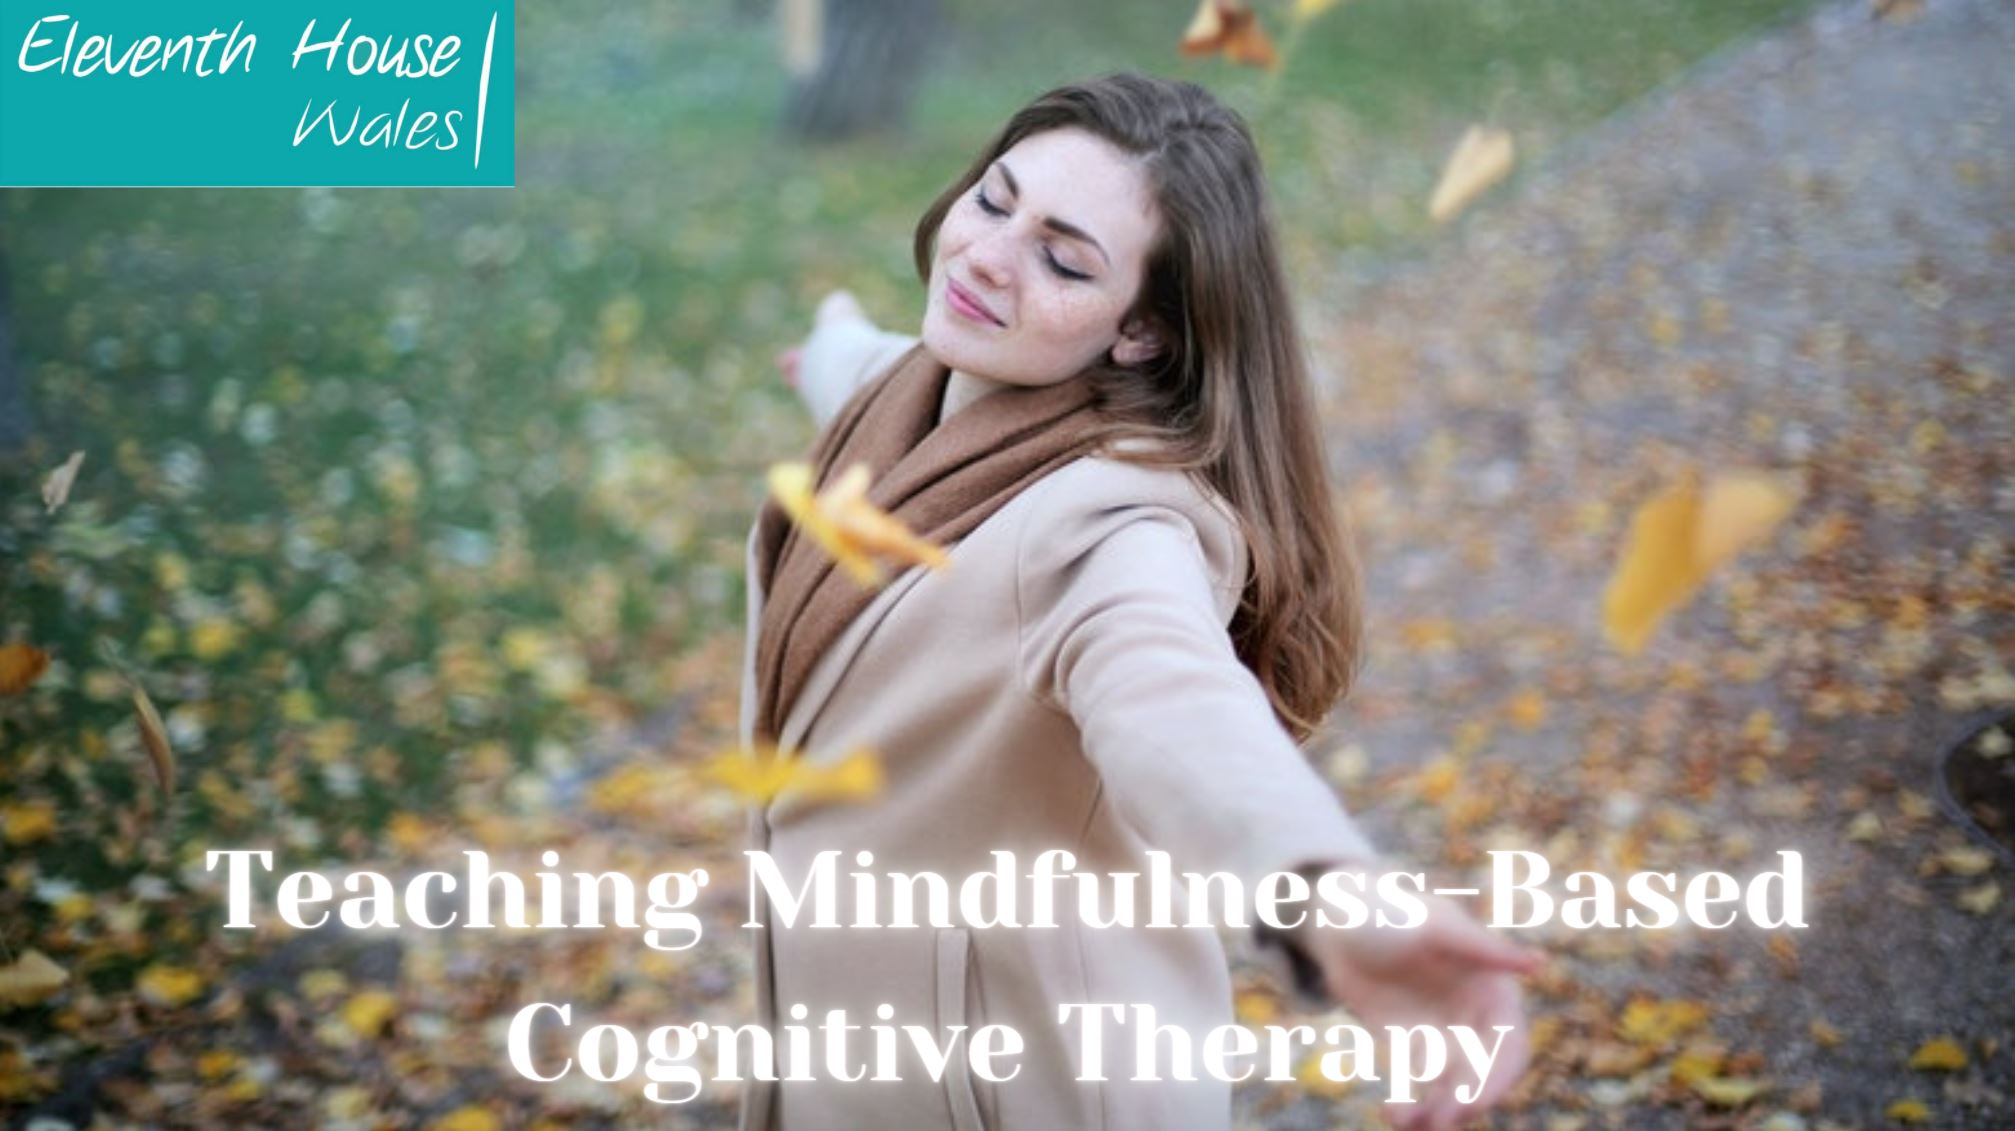 Teaching Mindfulness-Based Cognitive Therapy